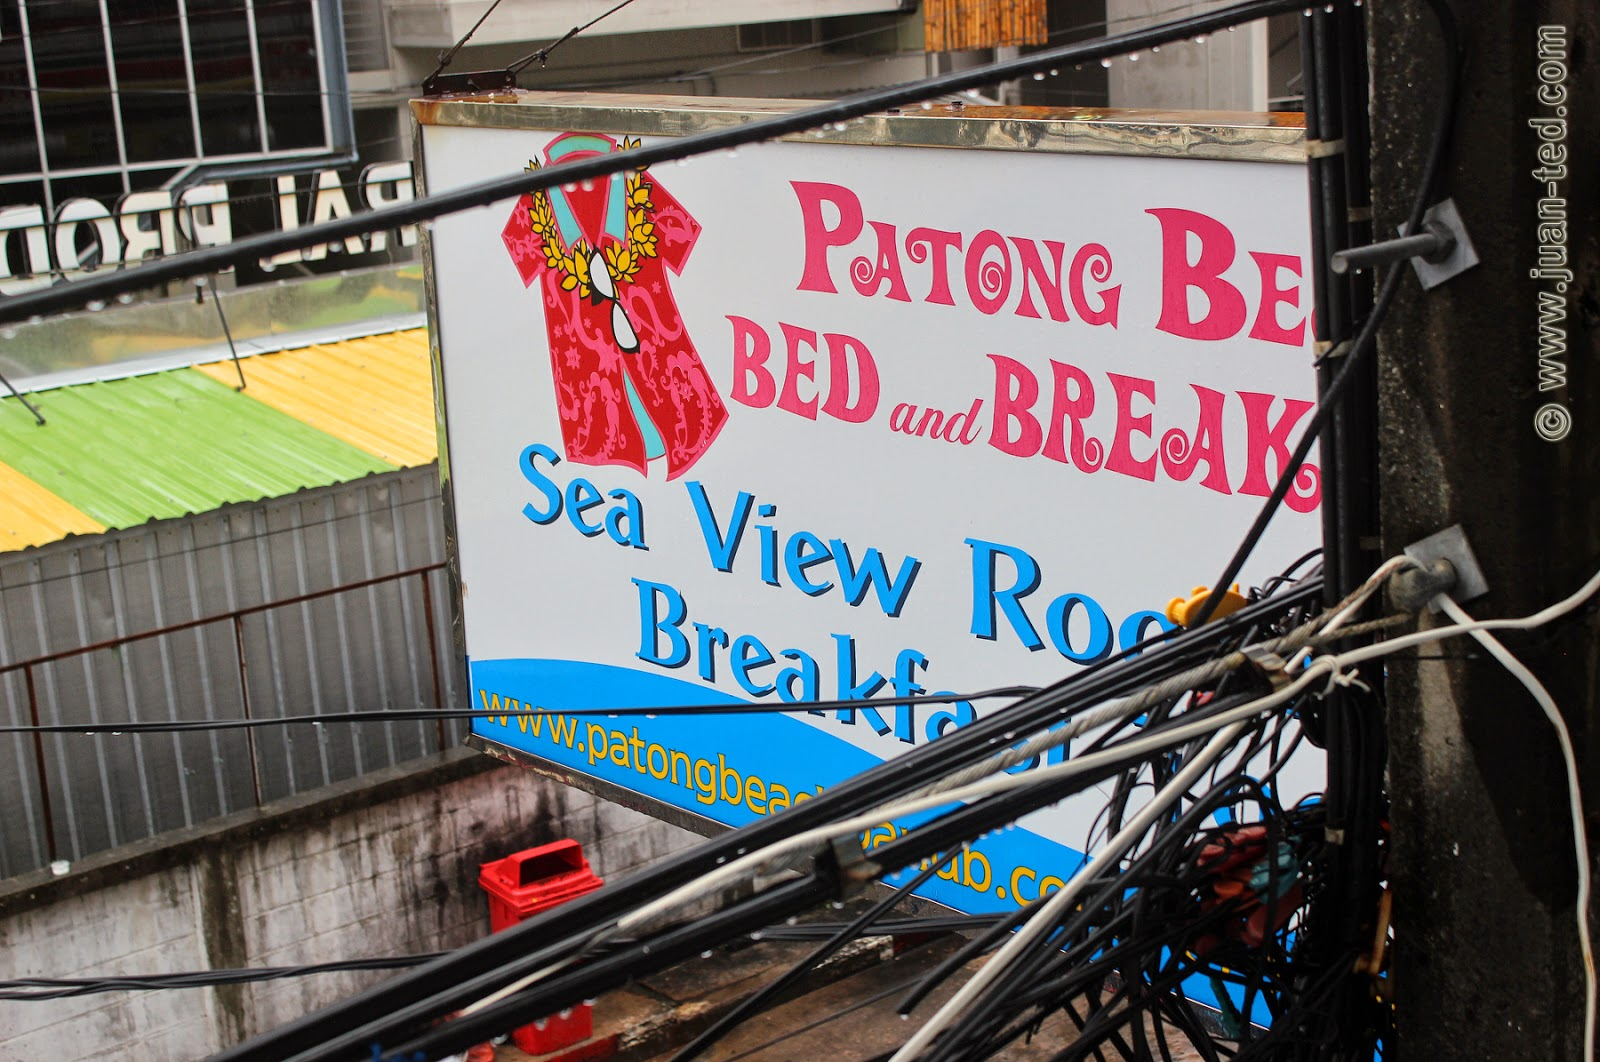 Let The Images Do Talking Et Island Hotel Accommodation Patong Beach Bed Breakfast Southern Thailand